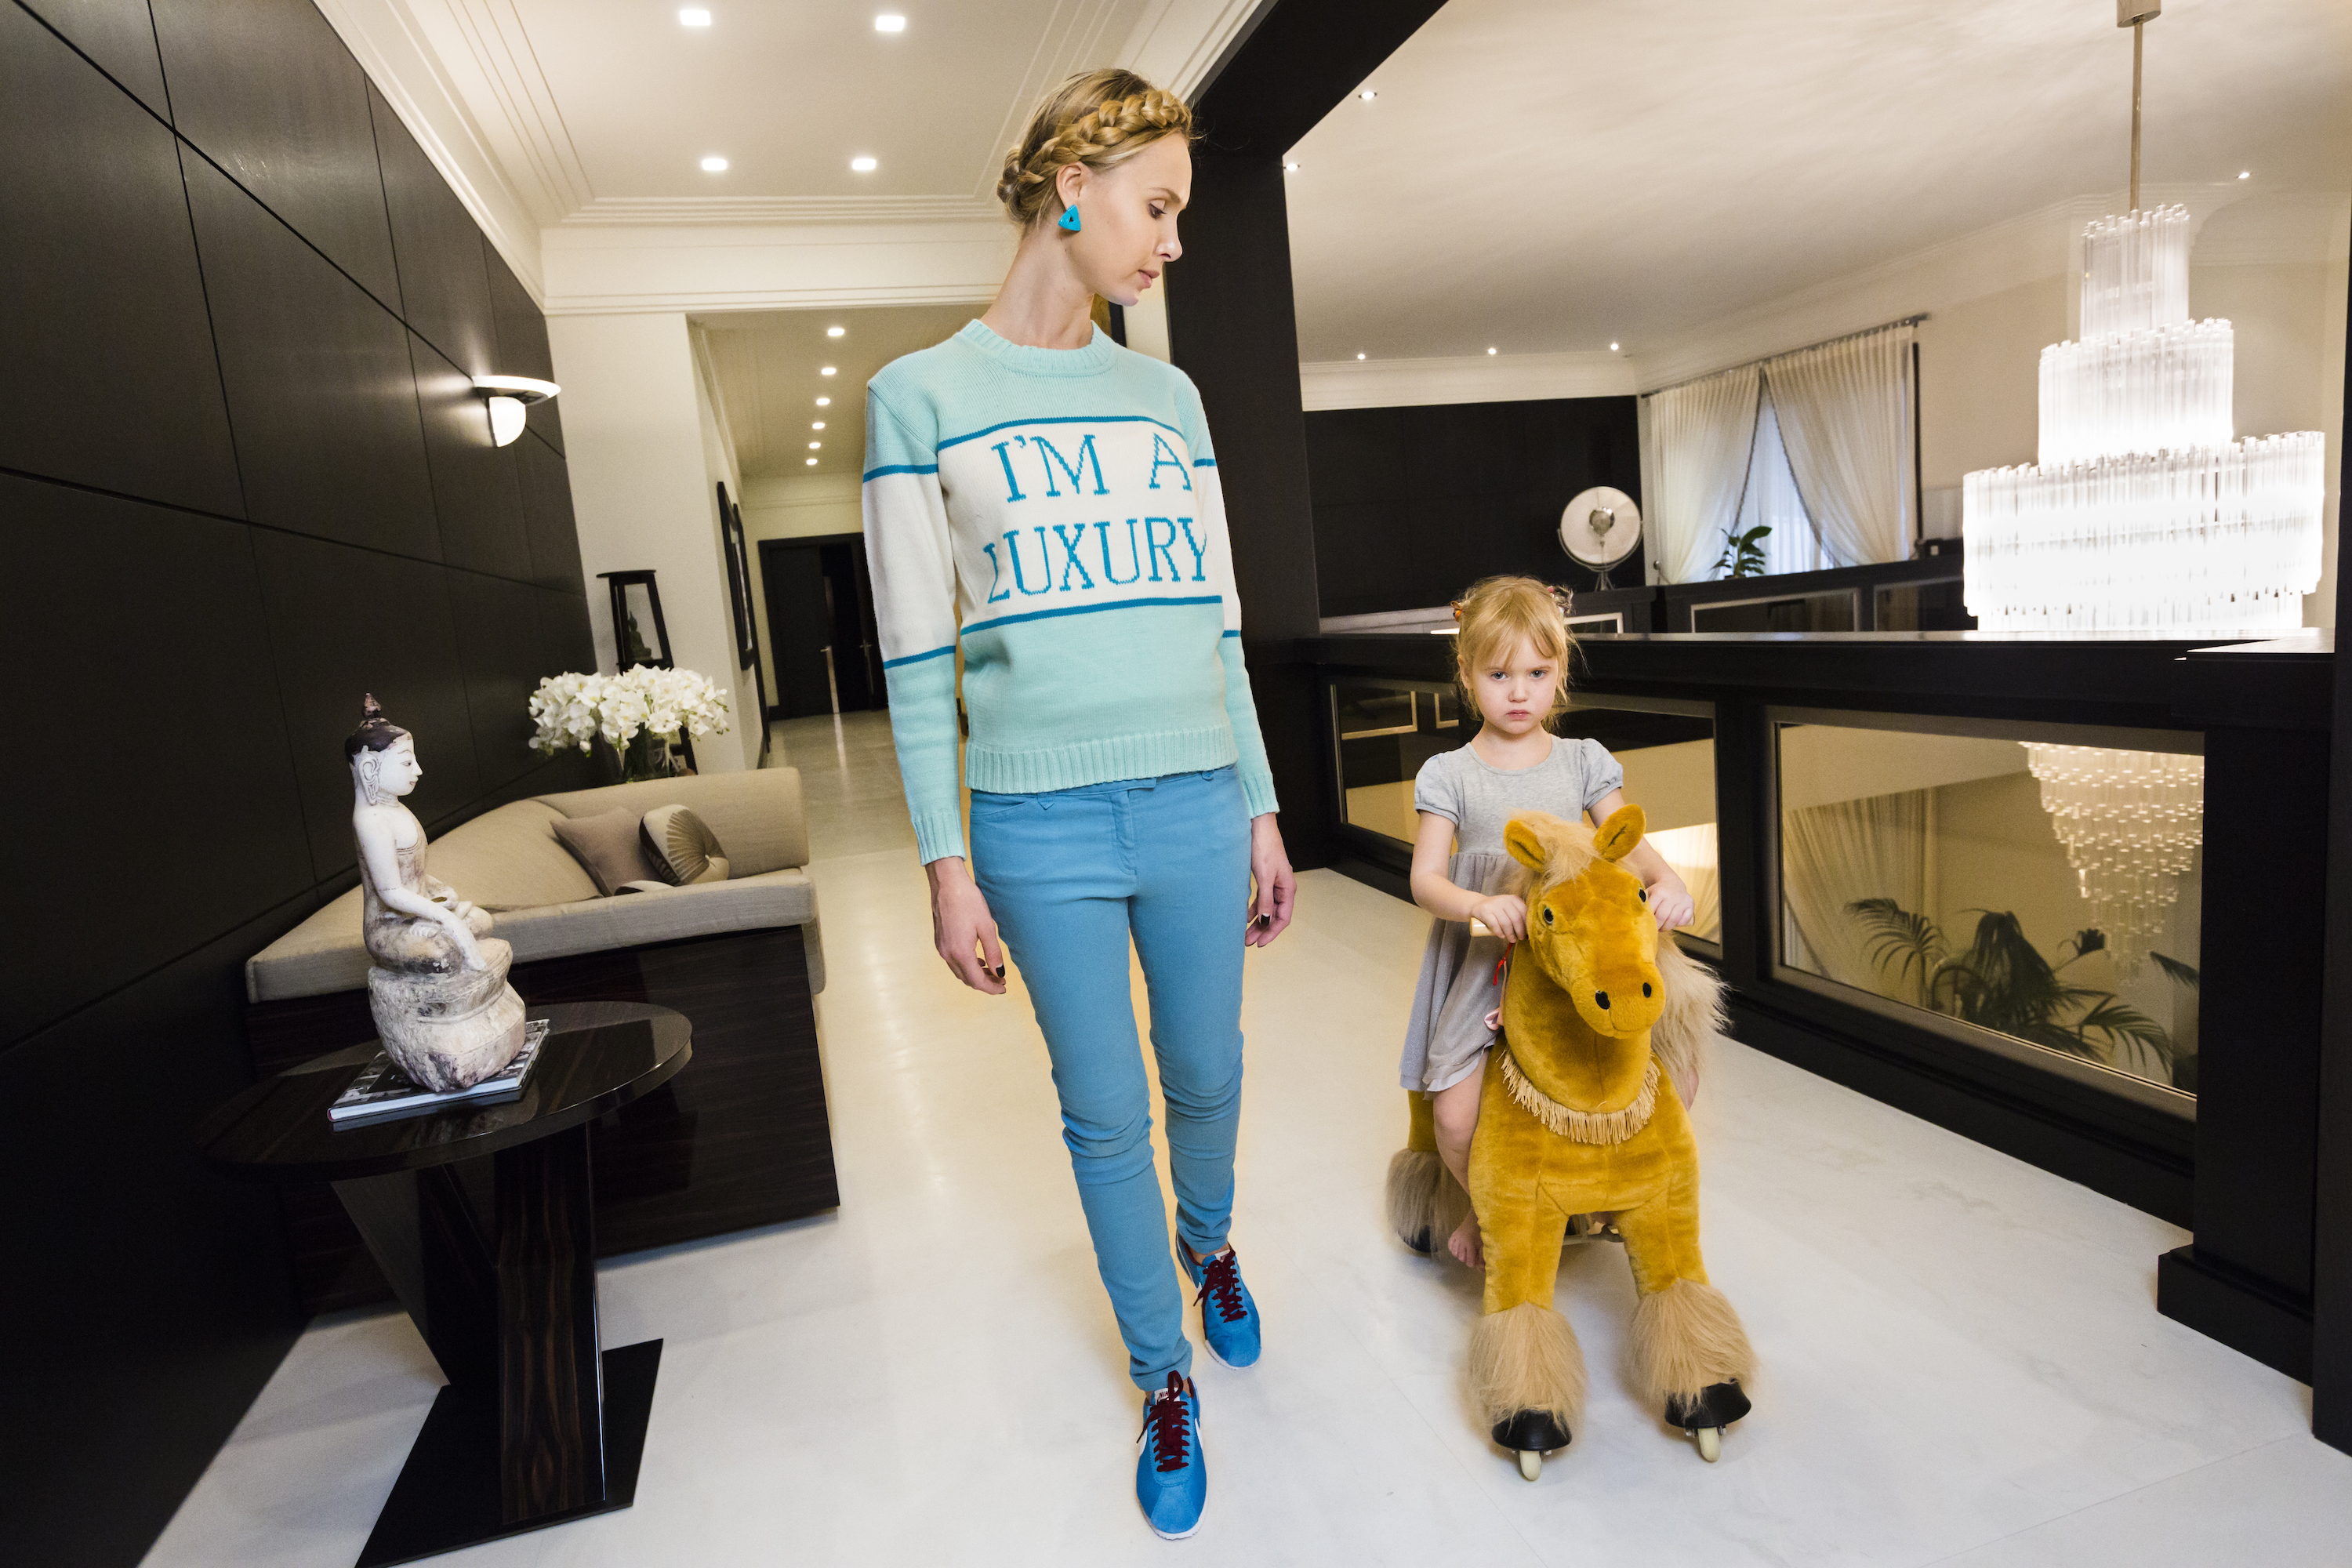 Iona at home with her daughter, Michelle, 4, Moscow, 2012